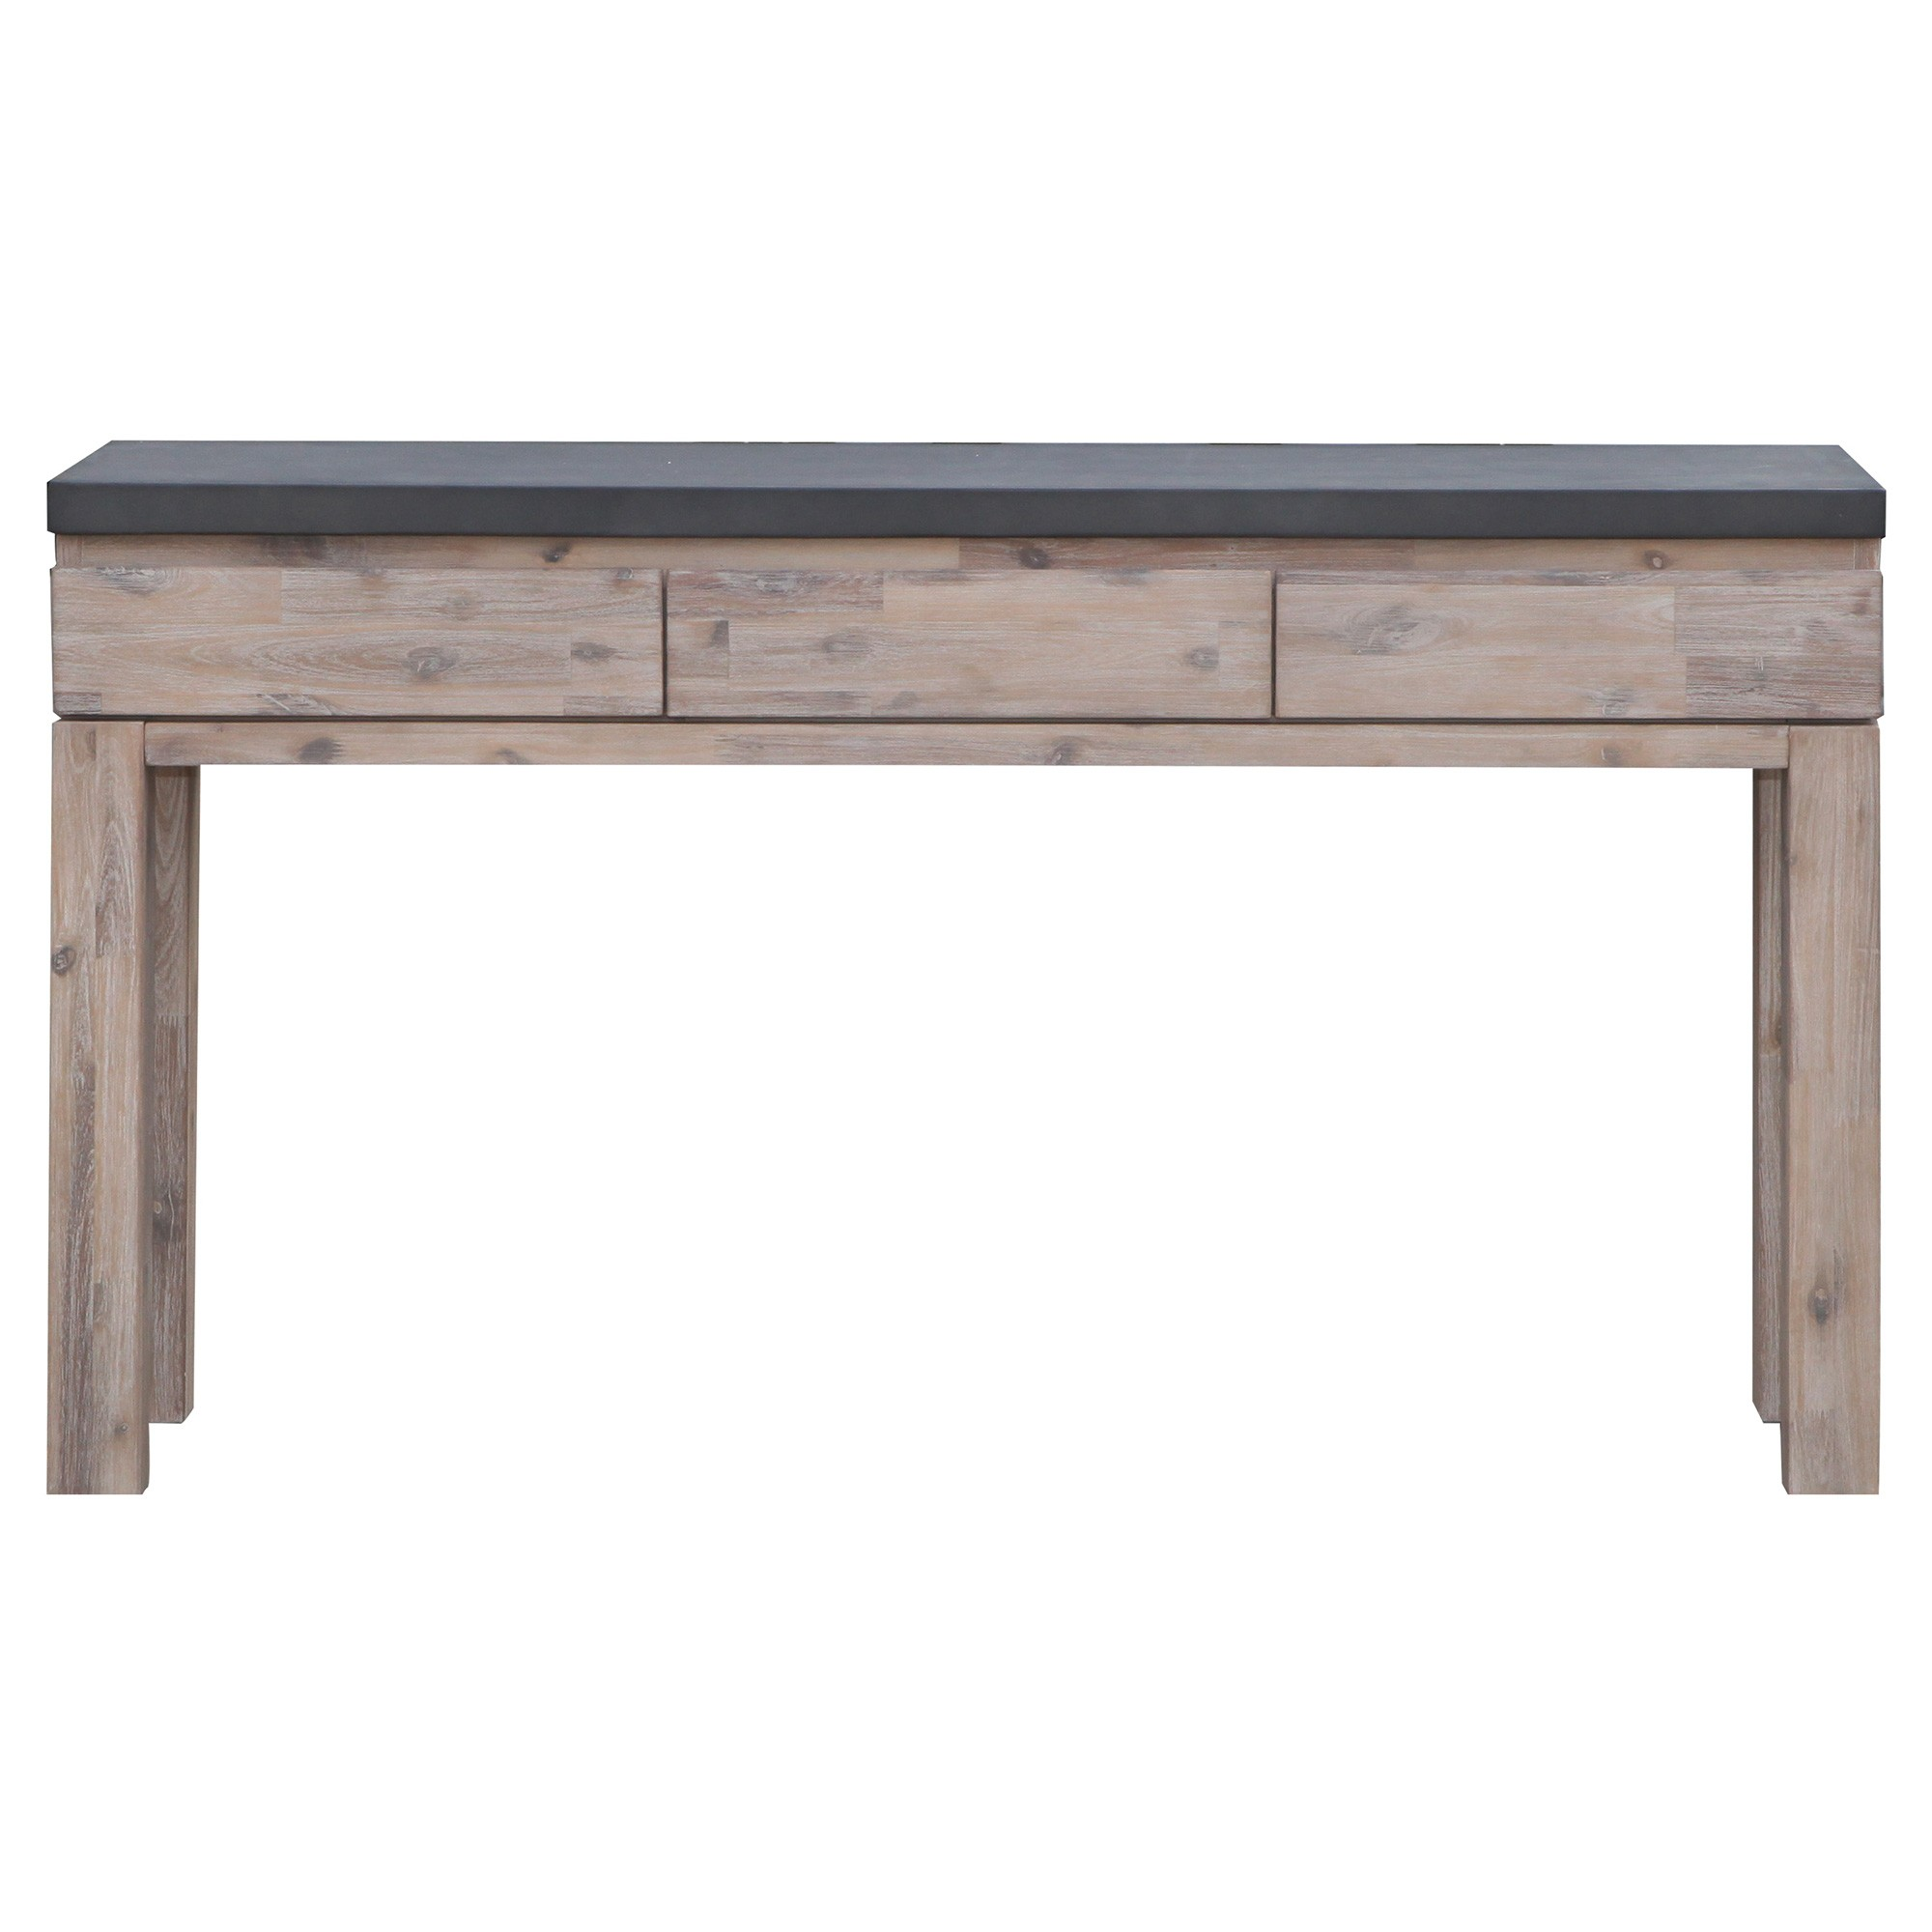 Pesaro Concrete Top Acacia Timber Sofa Table, 140cm